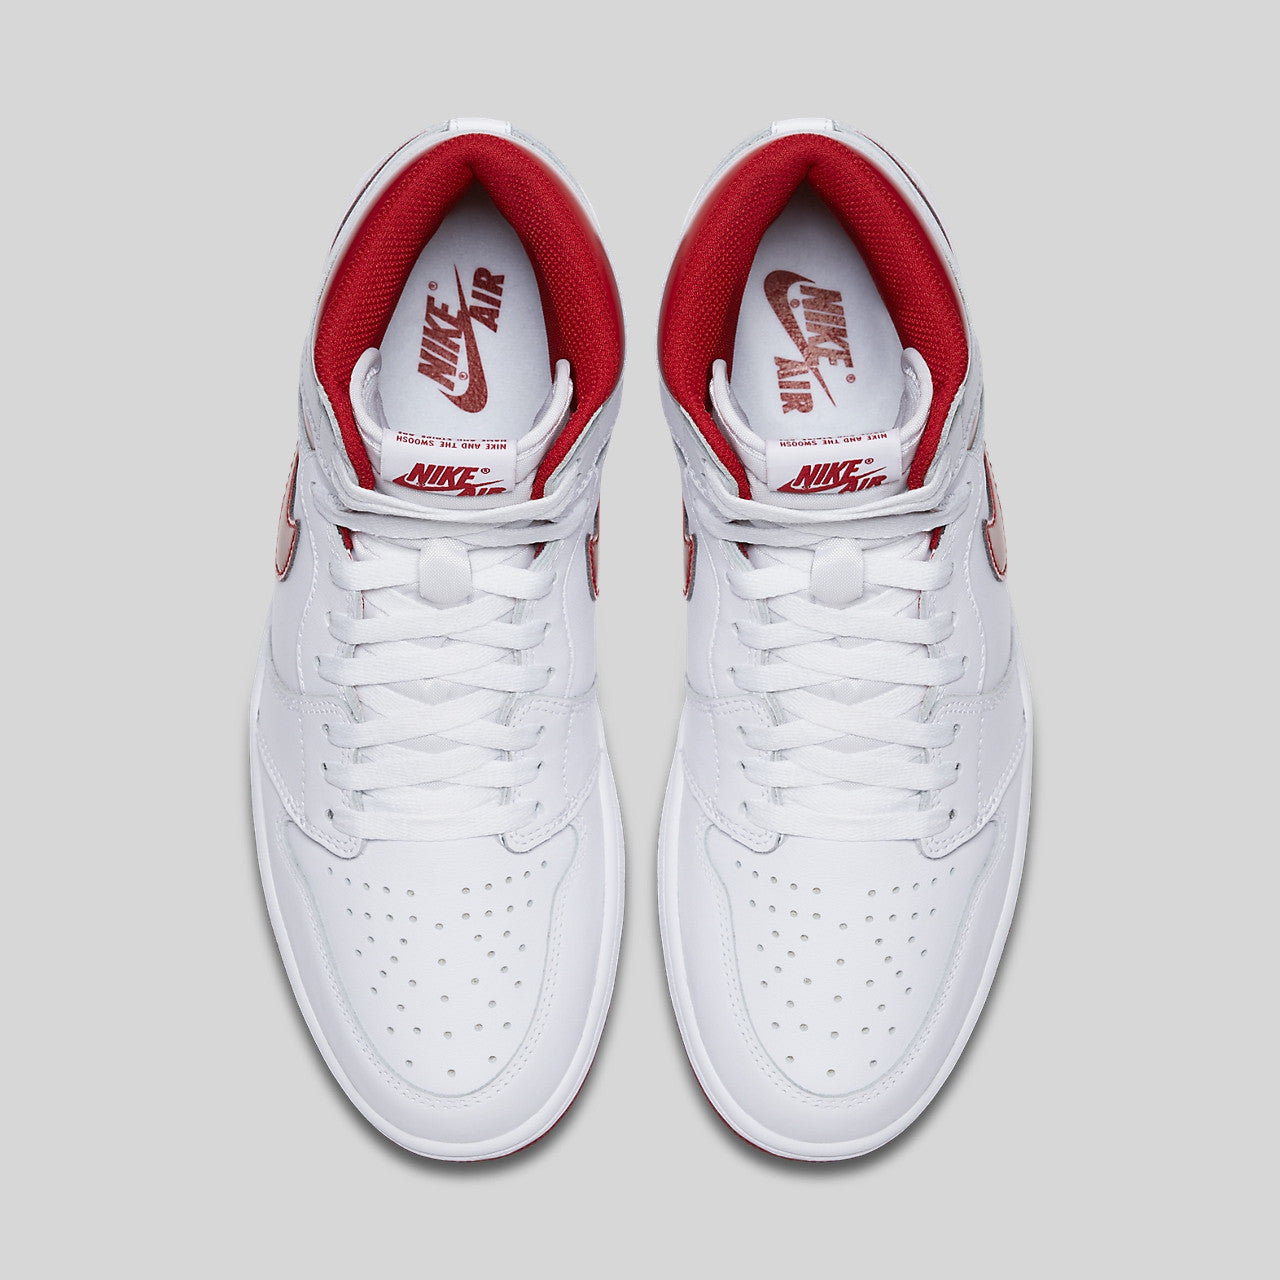 da57e066d95 Nike Air Jordan 1 Retro High OG White Metallic Red (555088-103 ...